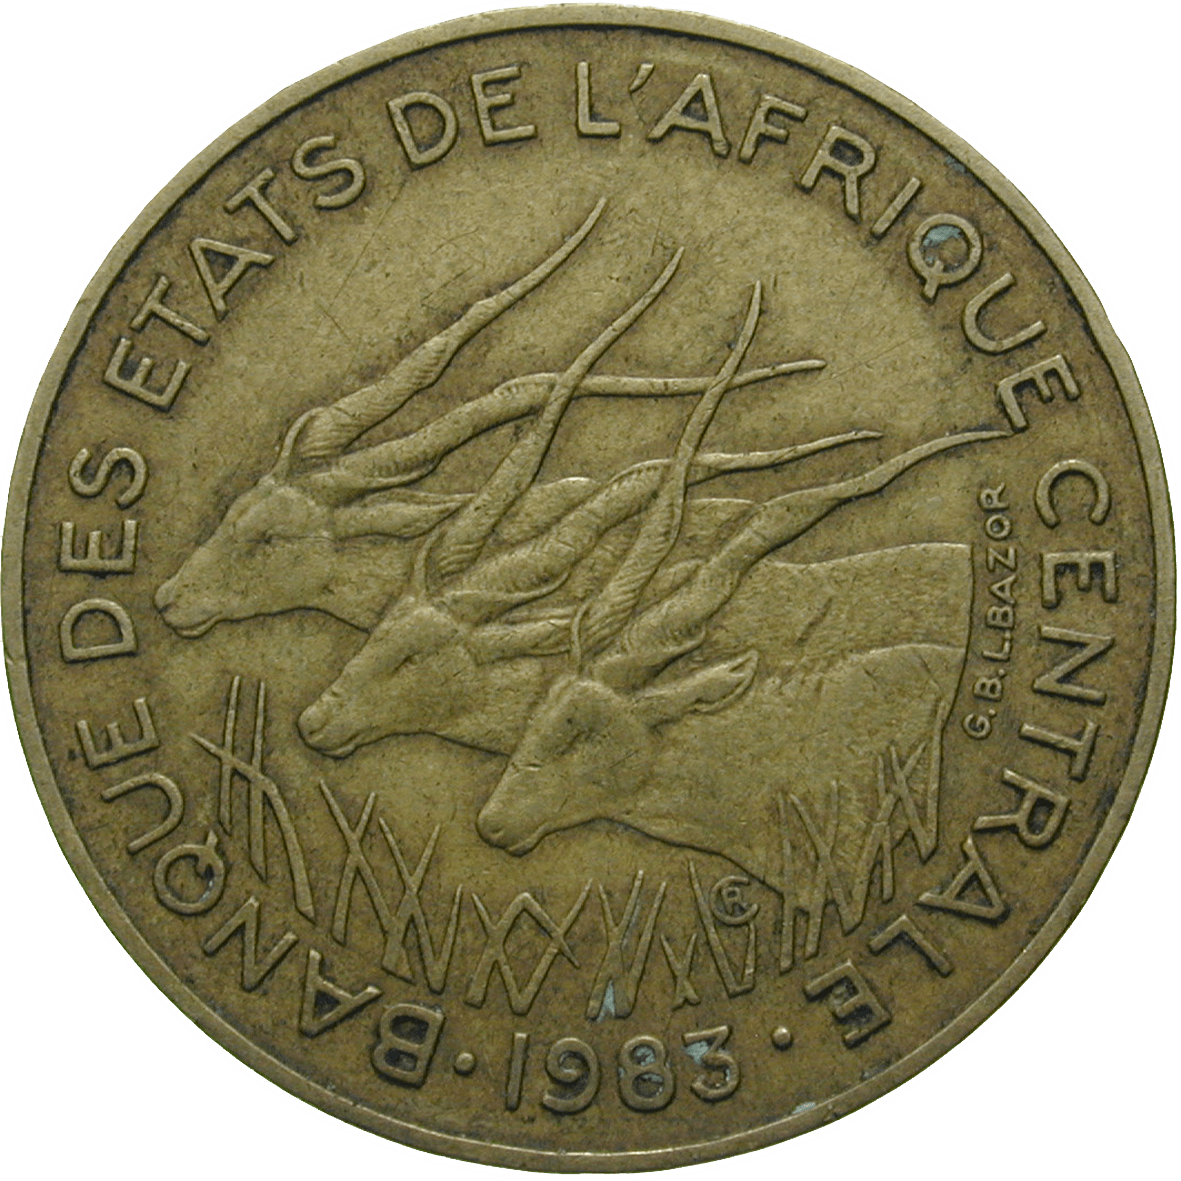 Central African Monetary Union, 10 CFA Francs 1983 (obverse)